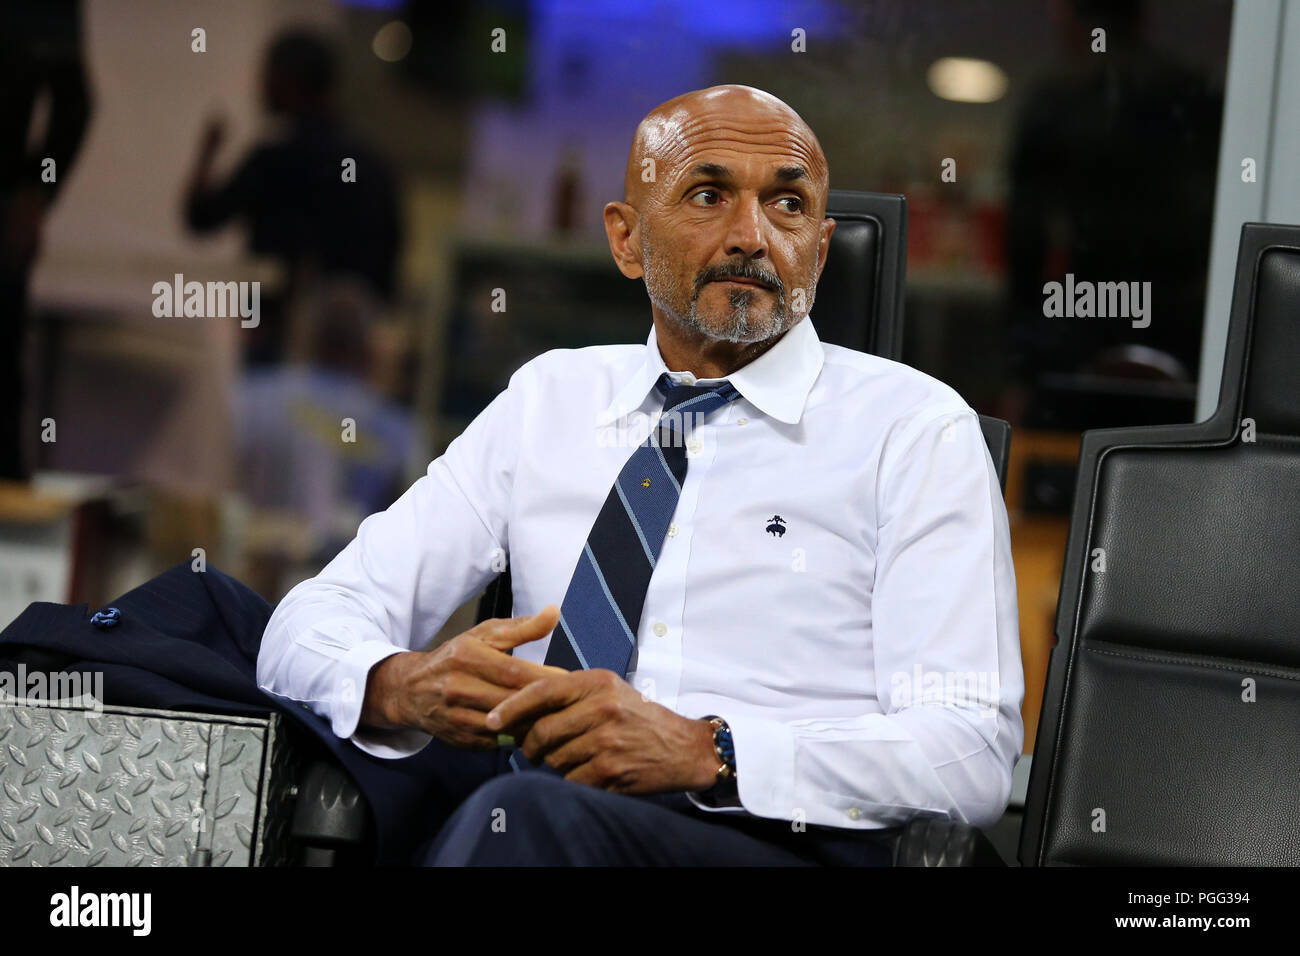 Milano, Italy. 26th August, 2018. Luciano Spalletti head coach of FC Internazionale look on before  the Serie A match between FC Internazionale and Torino Fc. Stock Photo